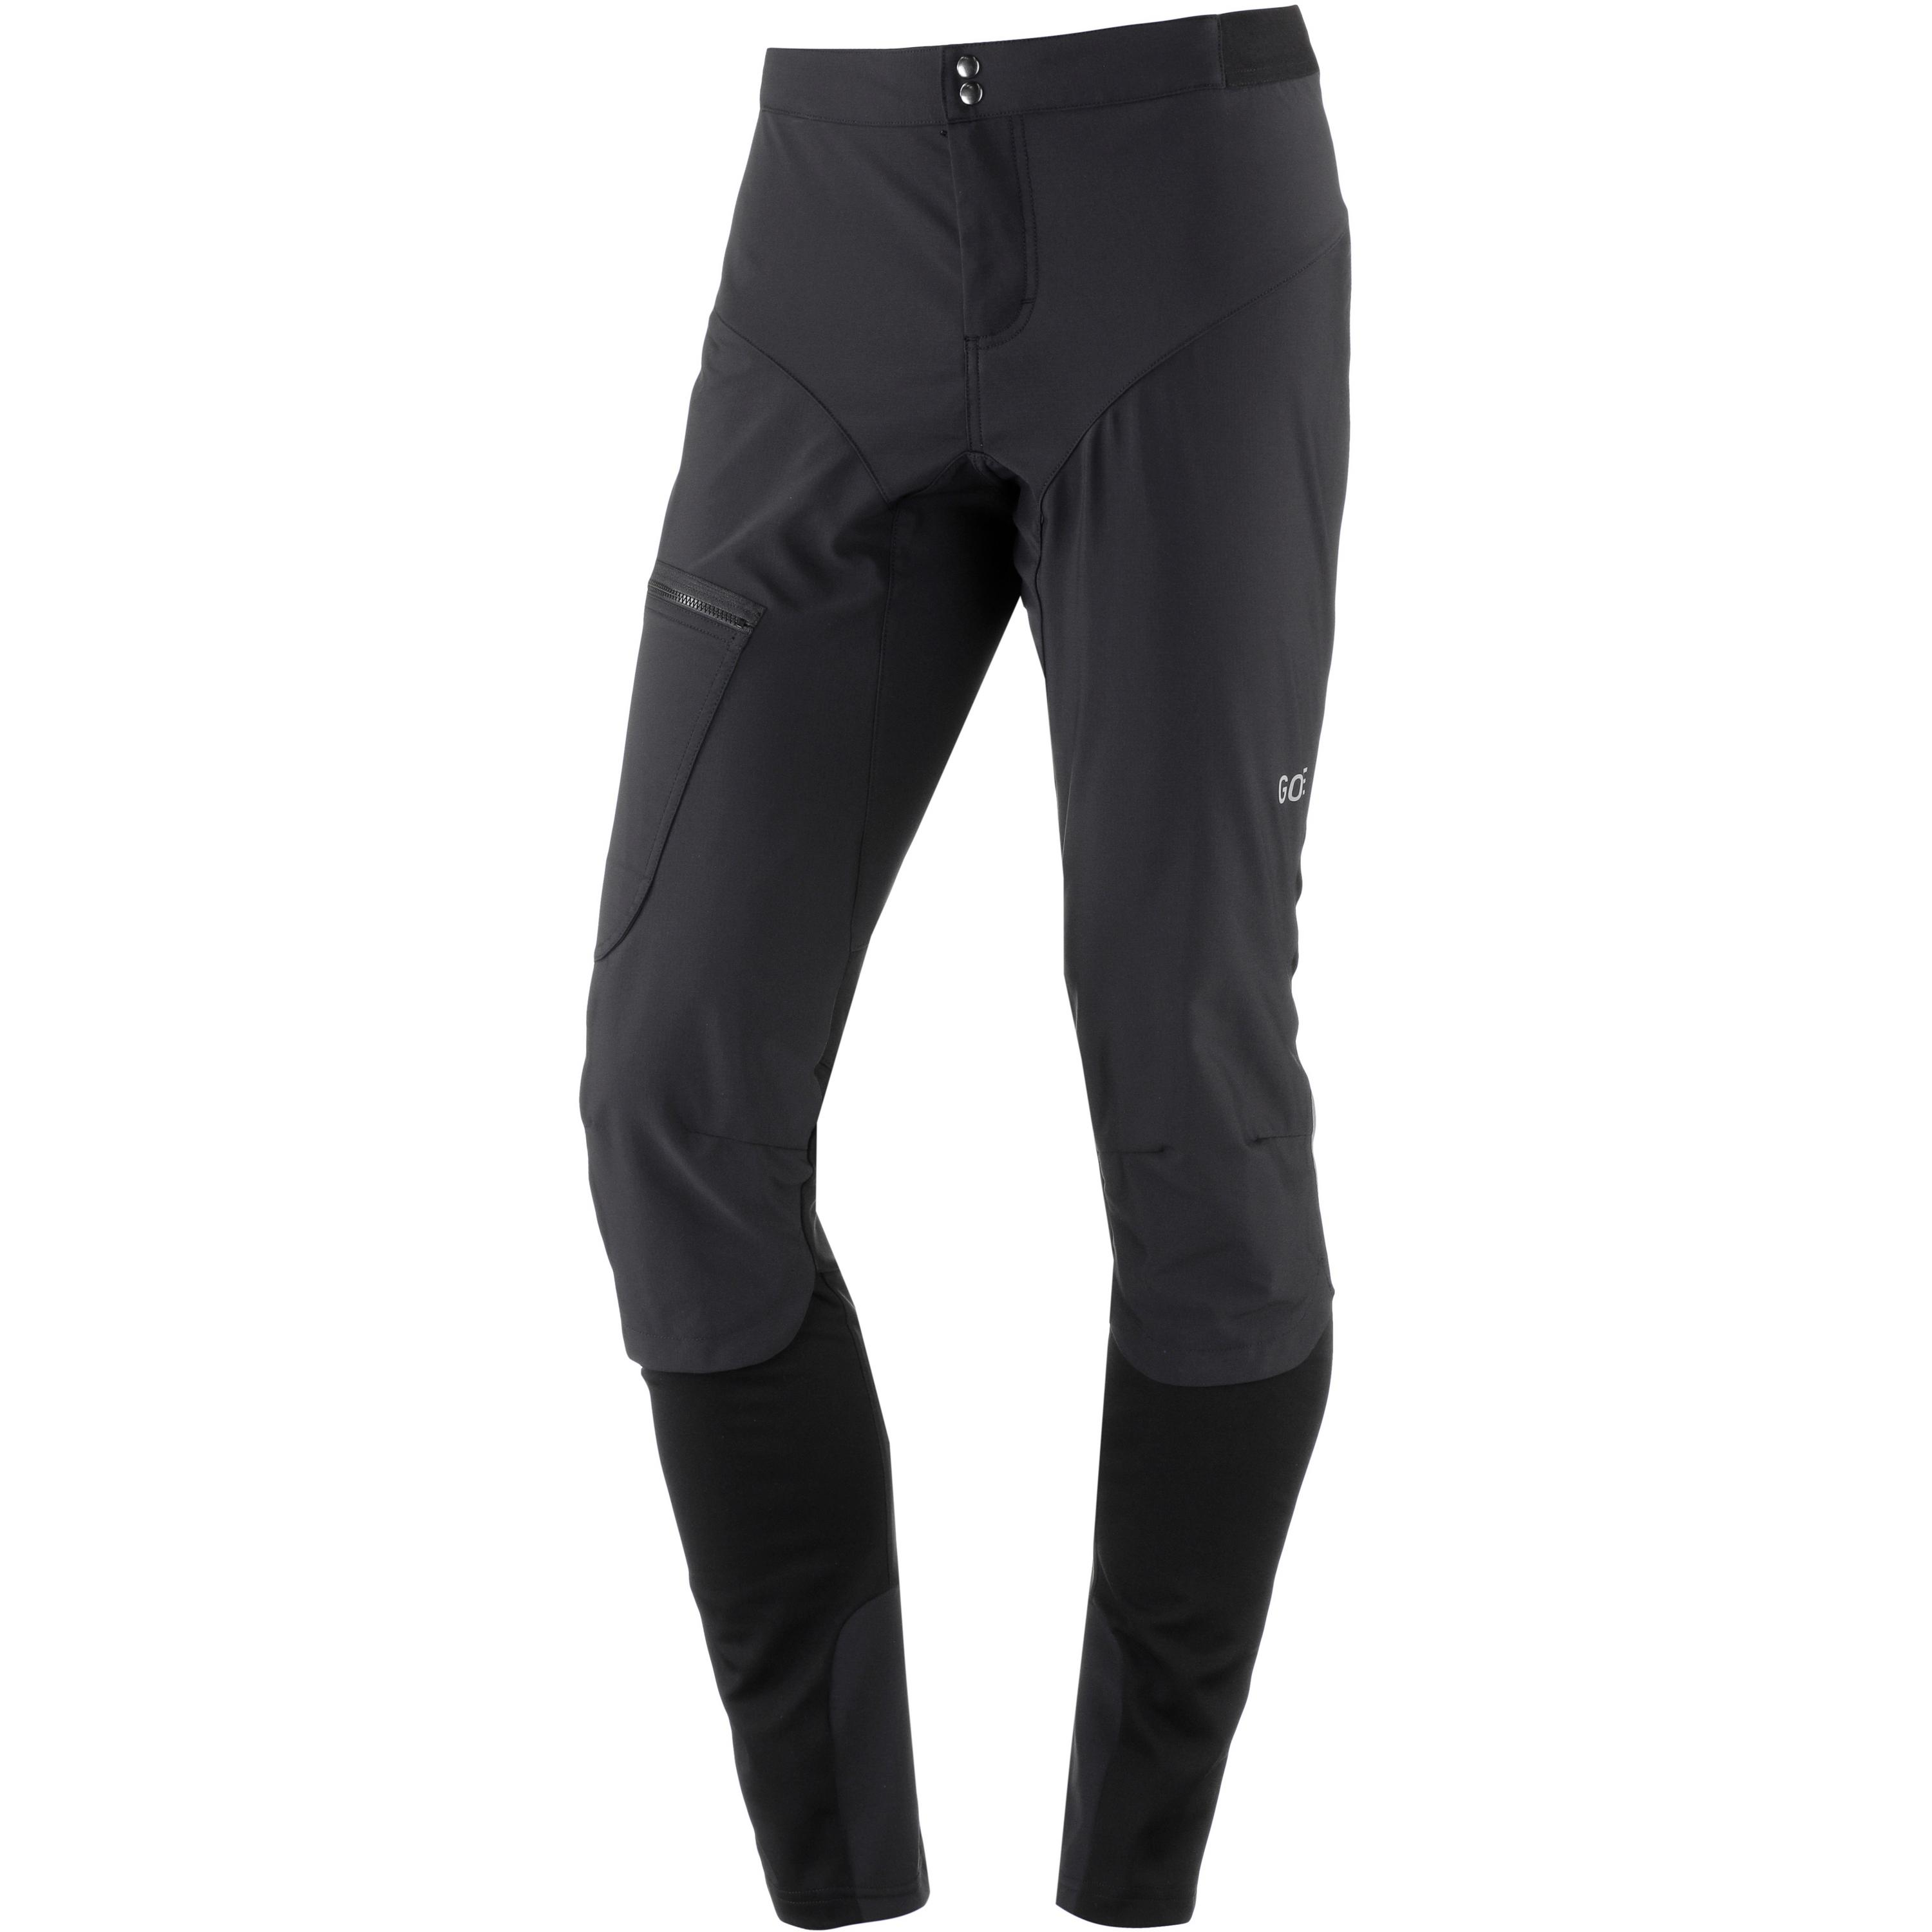 Image of GORE® WEAR C5 Gore Windstopper Trail 2in1 Pants Fahrradhose Herren